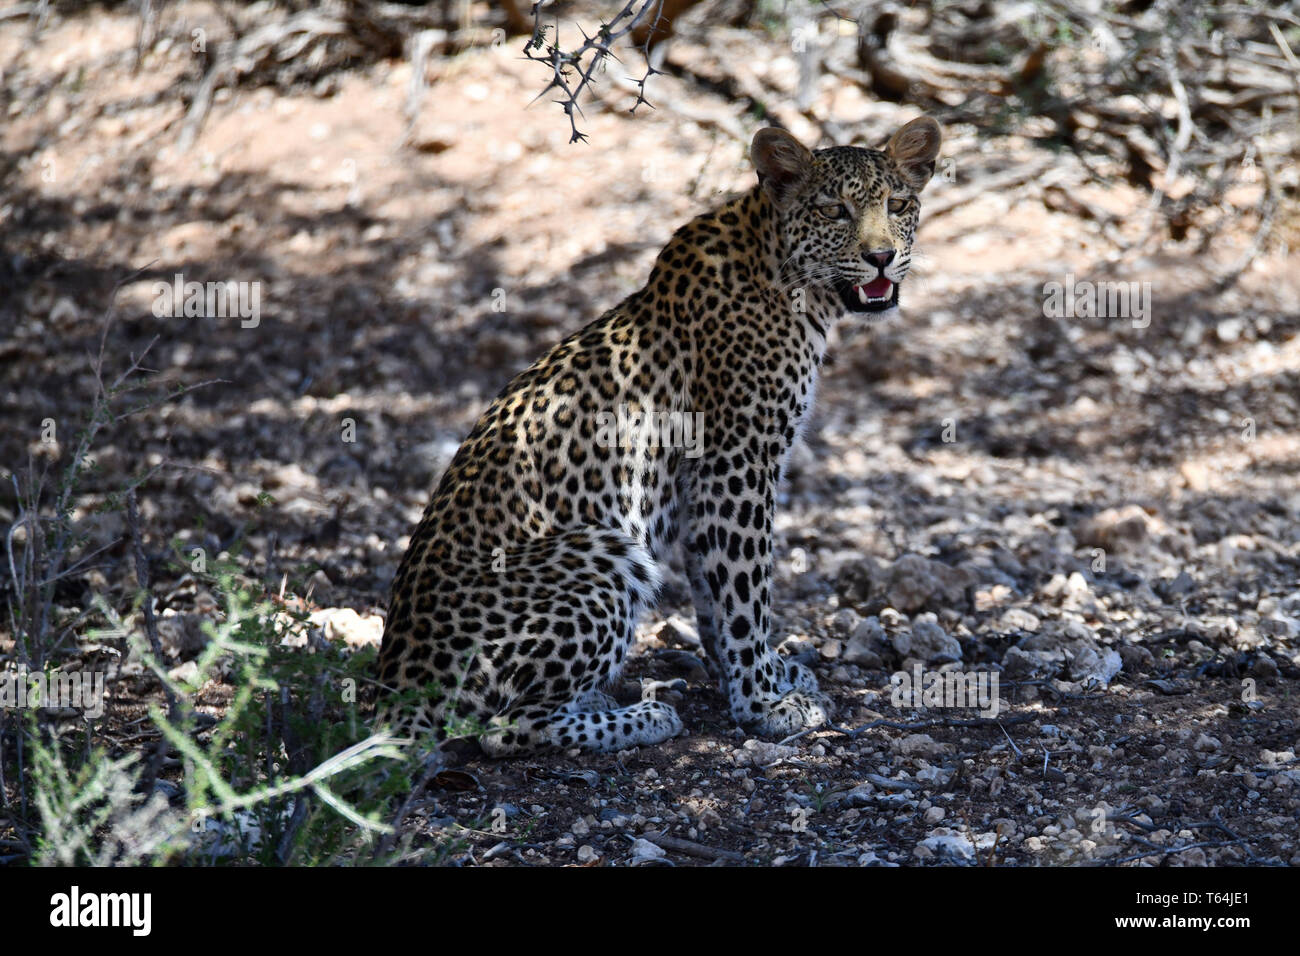 In the shade of a tree, a leopard takes a break in the heat of the day in the South African part of the Kgalagadi Transfrontier National Park and relaxes, taken on 26.02.2019. The leopard (Panthera pardus) belongs to the family of cats; After the Tiger, Loewen and Jaguar, he is the fourth largest cat of prey. The low-susceptible species lives in much of Asia and Africa south of the Sahara, varying in size and weight depending on the environment, male leopards can reach a shoulder height of 70-80 cm and a weight of up to 90 kg. Photo: Matthias Toedt/dpa-Zentralbild/ZB/Picture Alliance   u - Stock Image